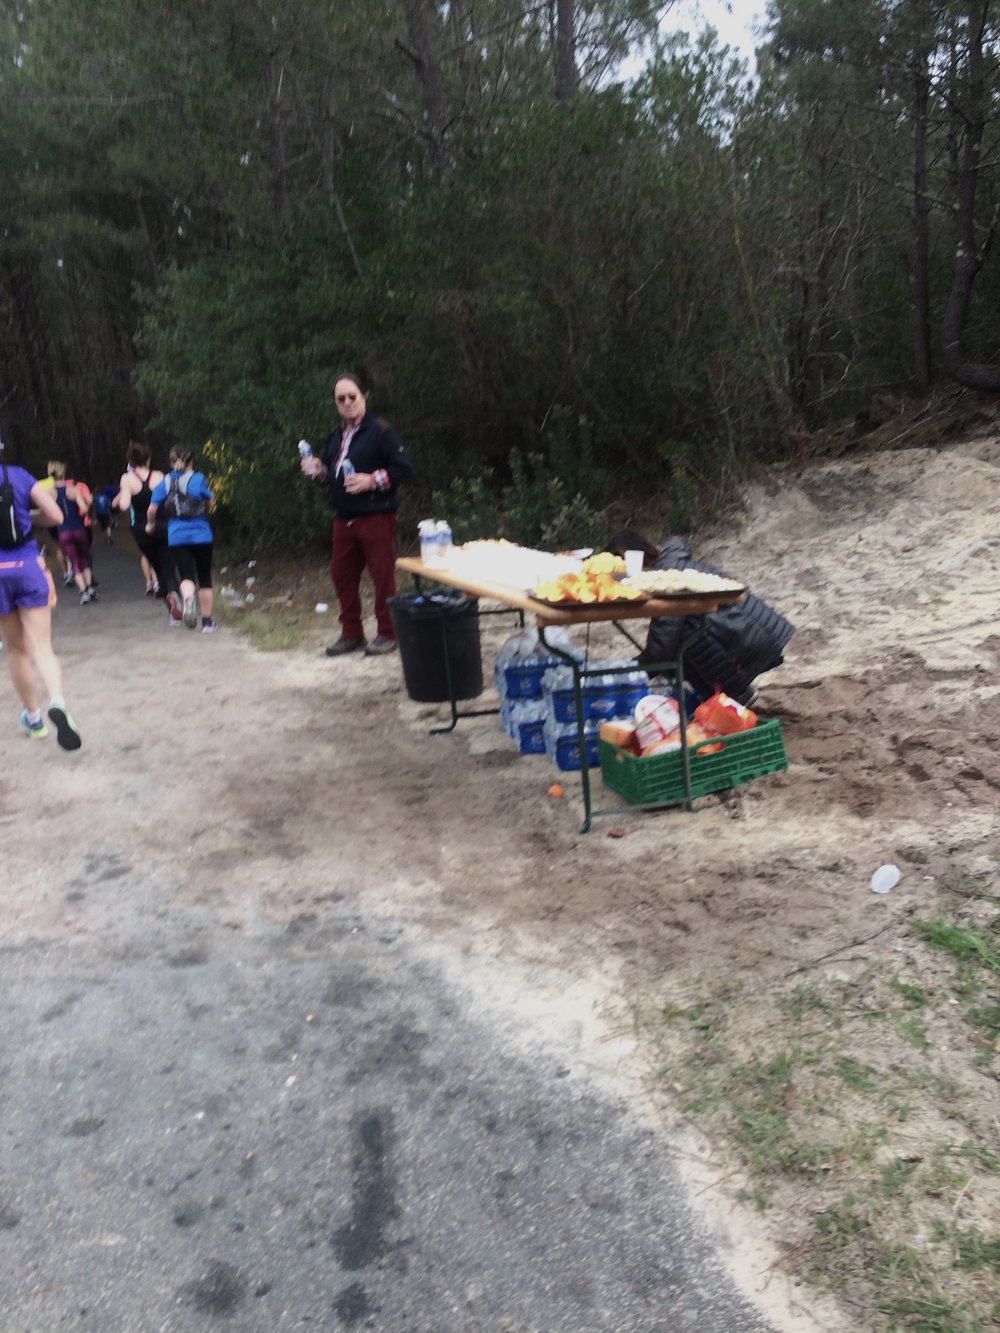 Terrible photo, excellent aid station.